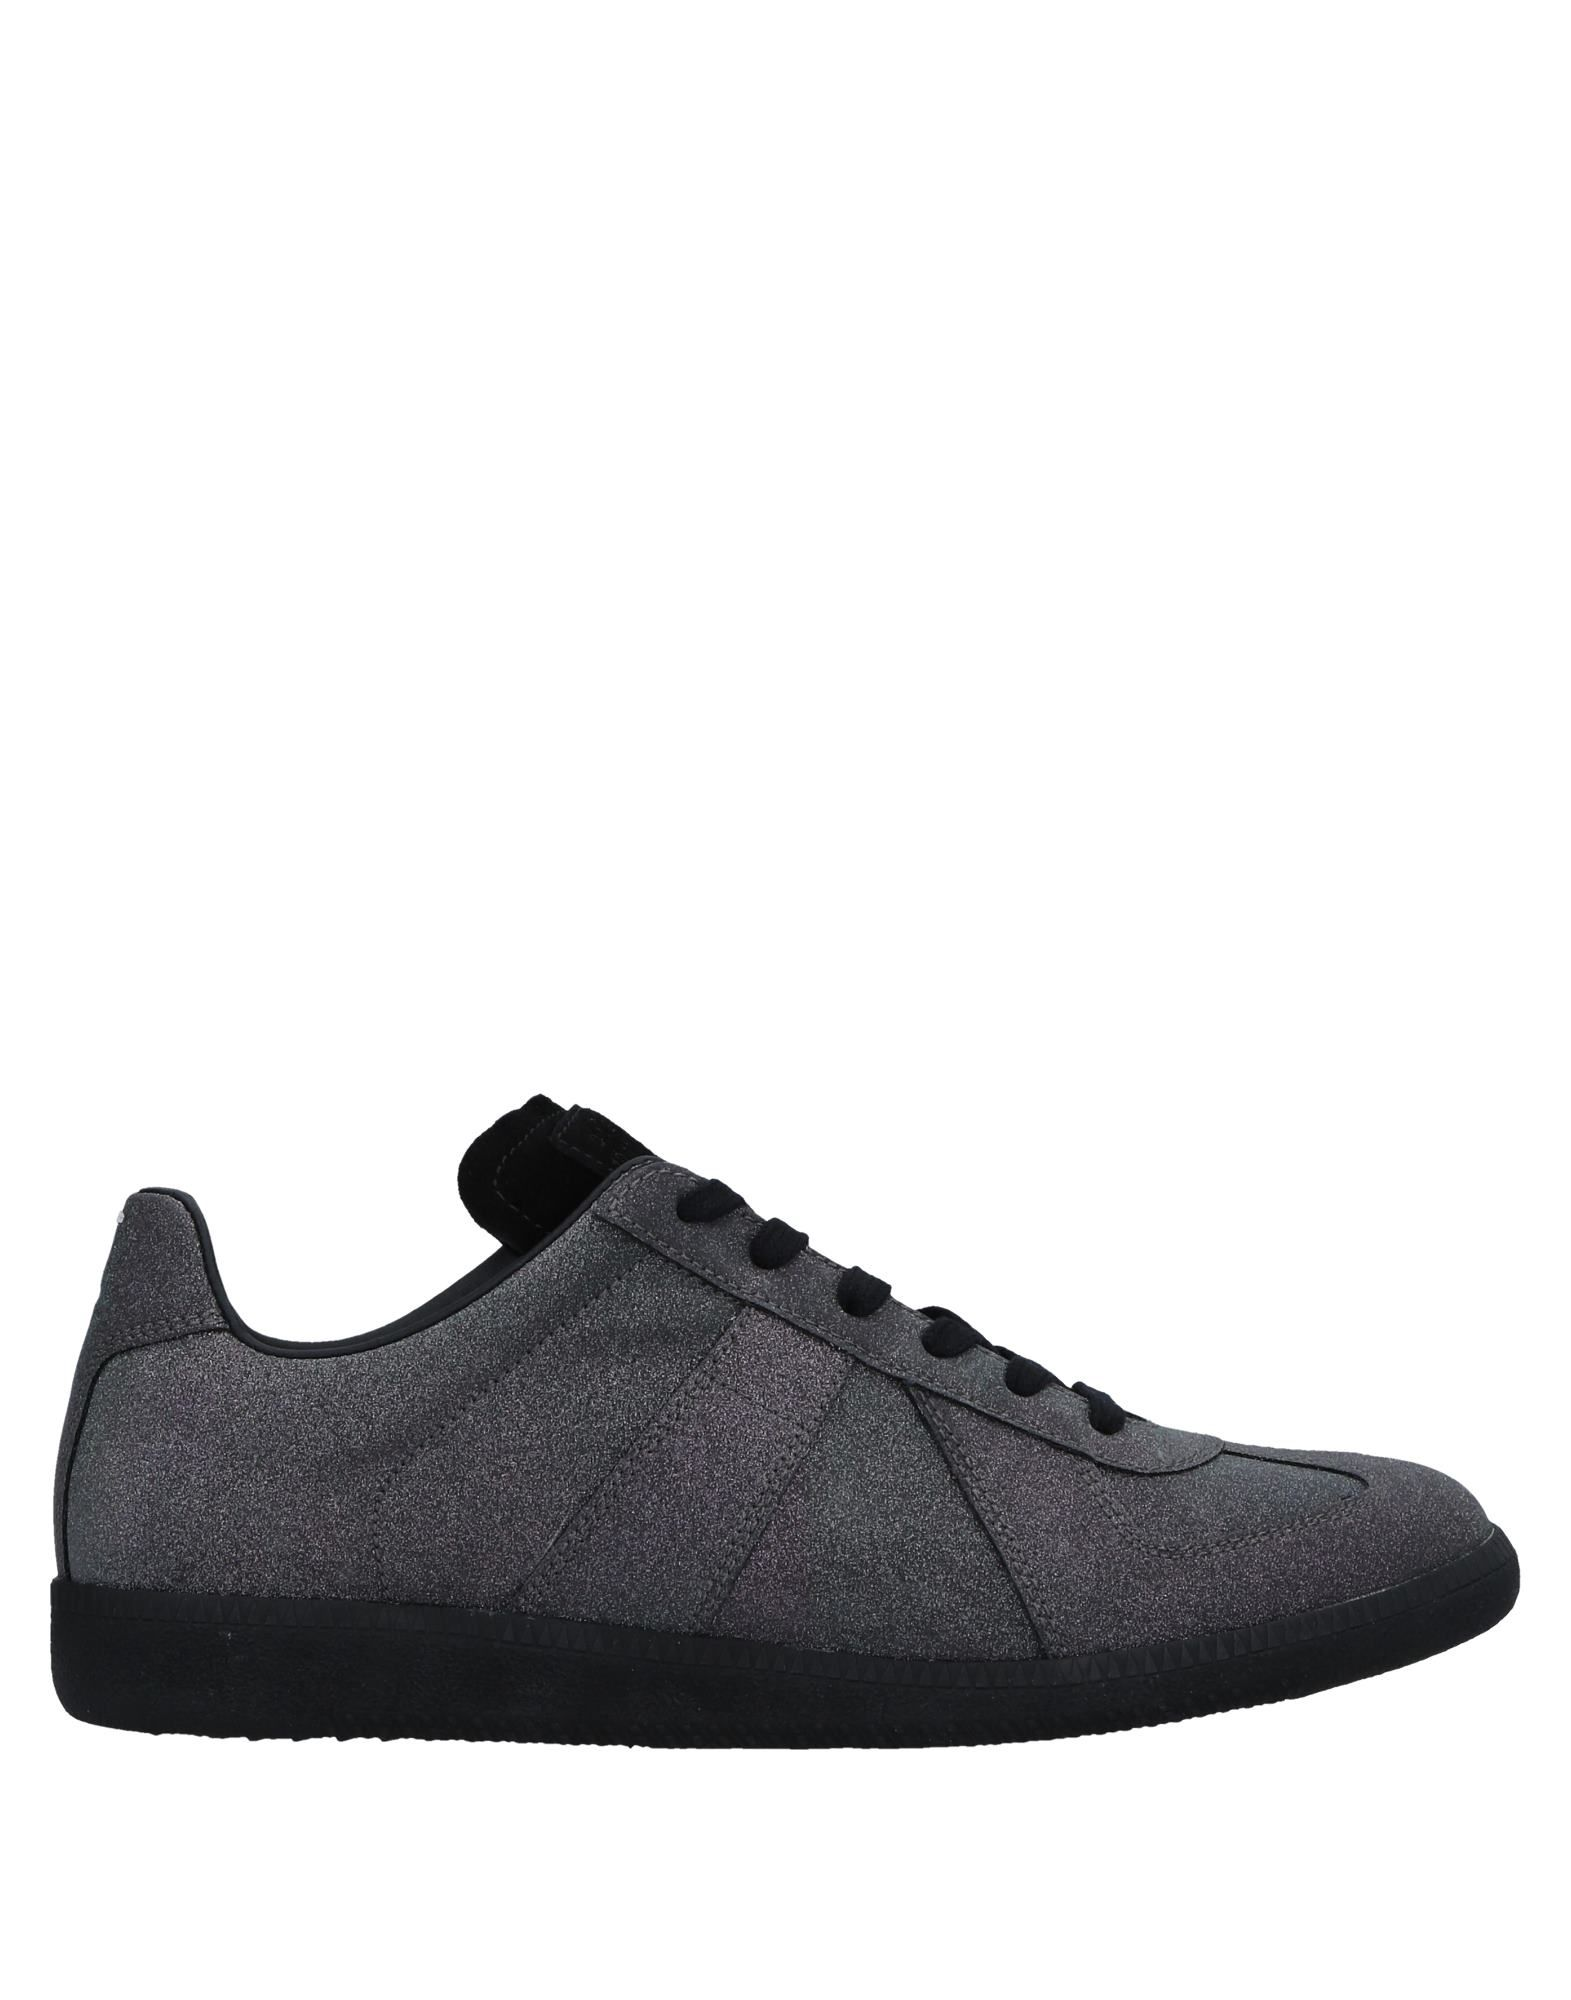 Maison Margiela Sneakers - Men Maison Margiela Canada Sneakers online on  Canada Margiela - 11535787OV a99a44